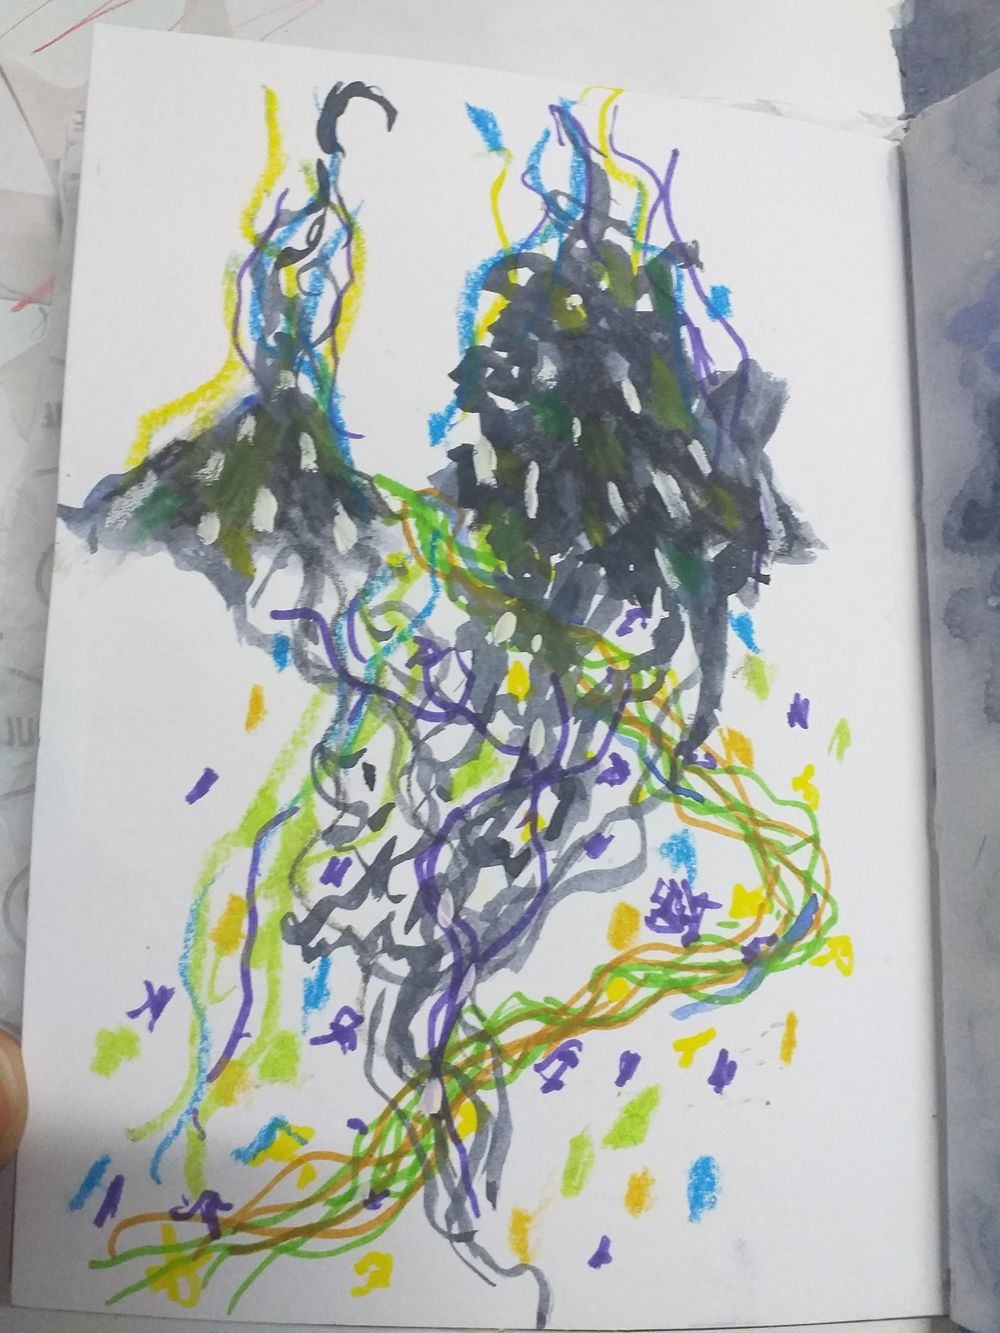 Fearless Art Jumpstart - my own paintings for the 14-days drawing challenge - image 8 - student project